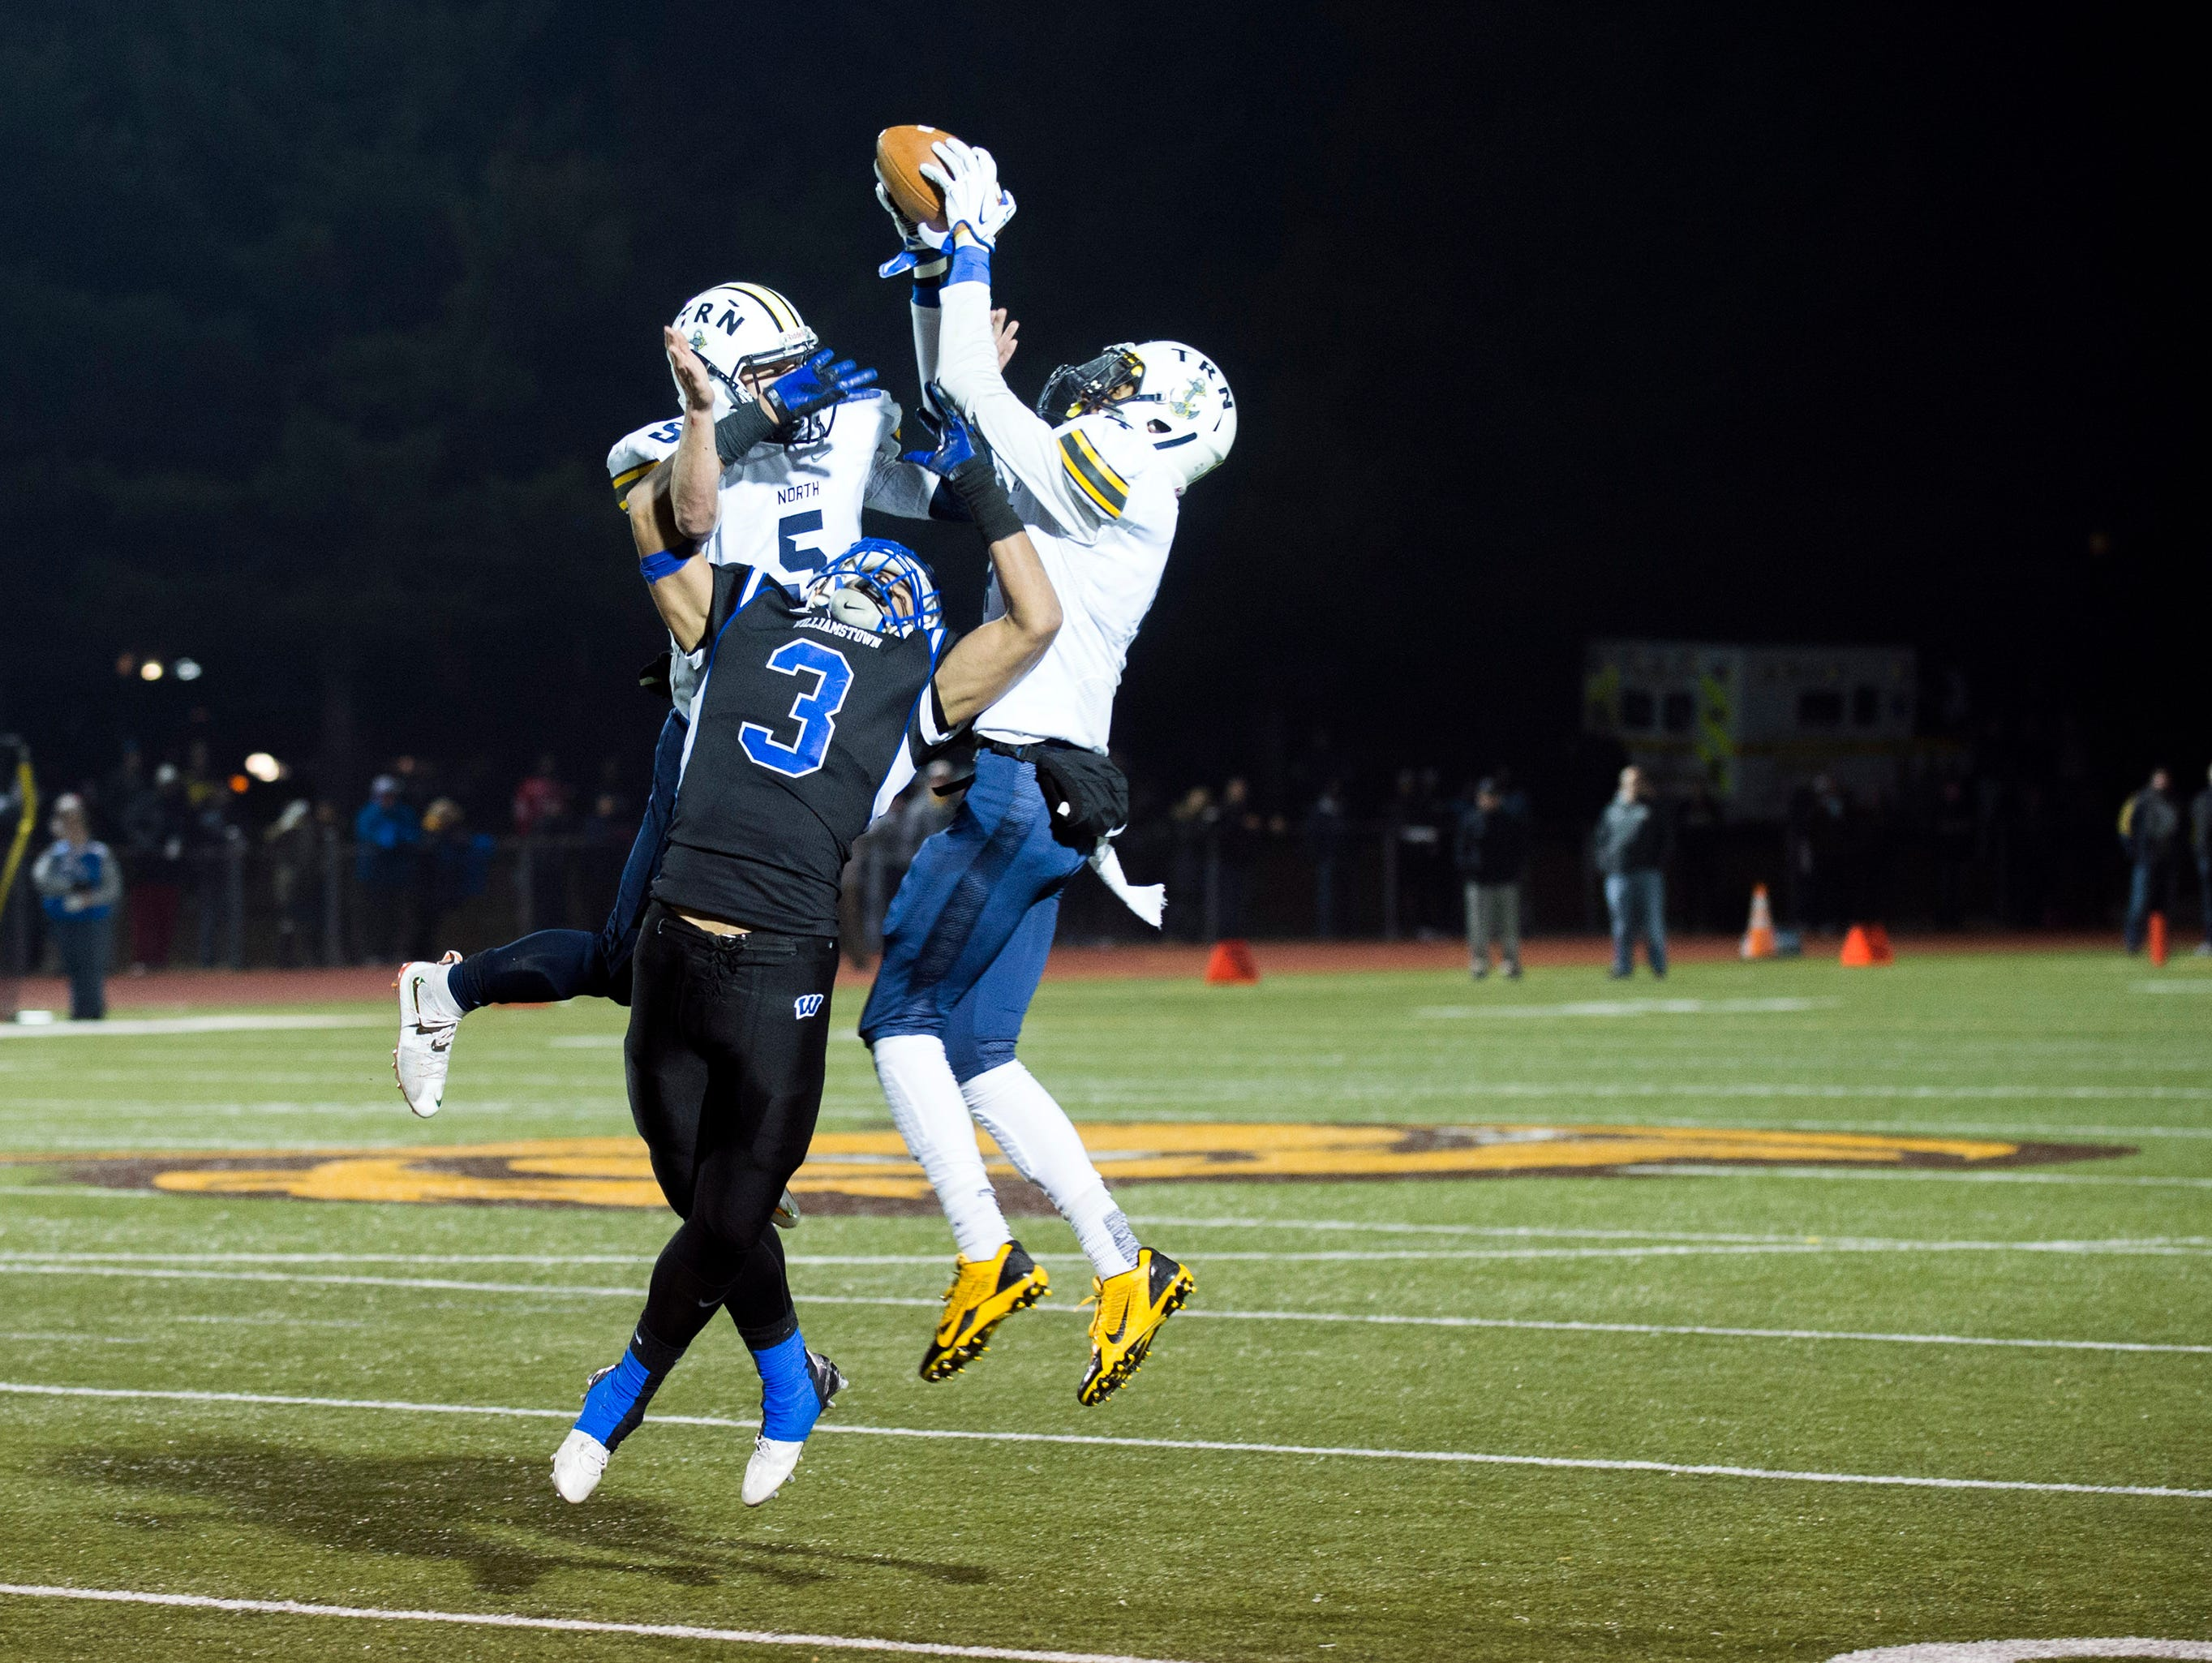 Williamstown's Eric Smith (3) can't make the grab as Toms River North intercepts the ball to end the game Saturday, Dec. 5 at Rowan University in Glassboro. Toms River North won 14-7, claiming the South Jersey Group 5 title.